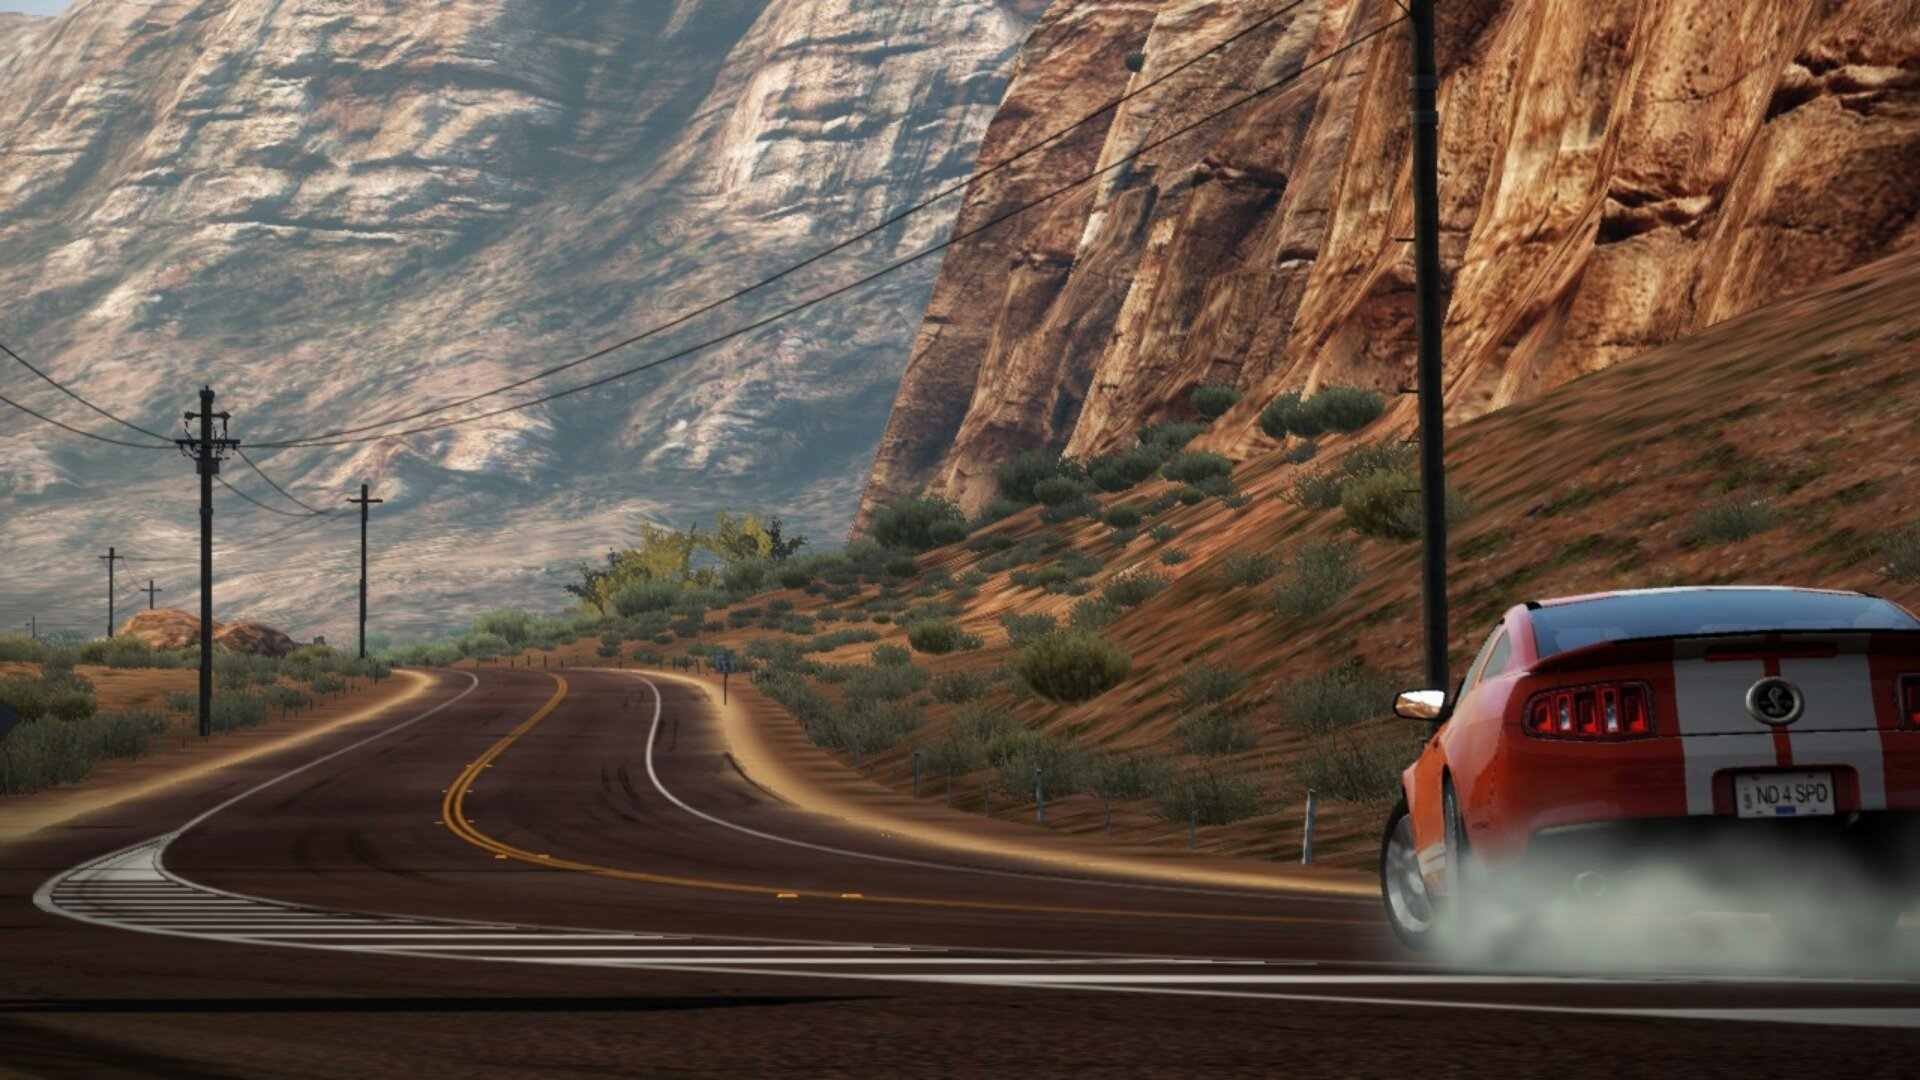 Need For Speed Hot Pursuit Hd Wallpaper Background Image 1920x1080 Id 455878 Wallpaper Abyss